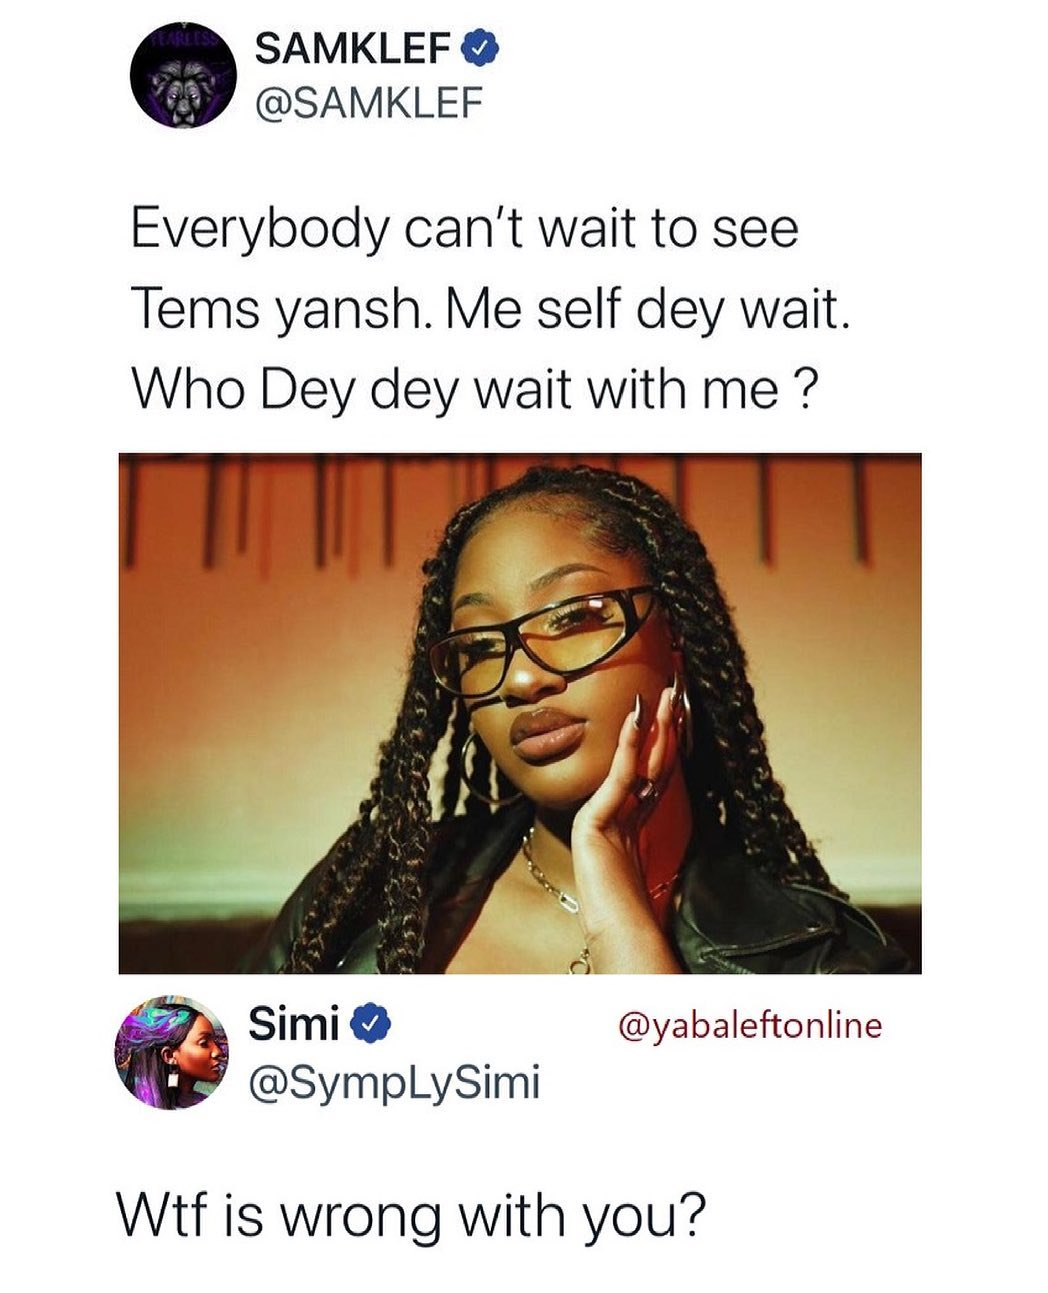 """""""You are a snake, ingrate"""" – Samklef blasts Simi for 'disrespecting' him over his tweet about Tems (video) 1"""